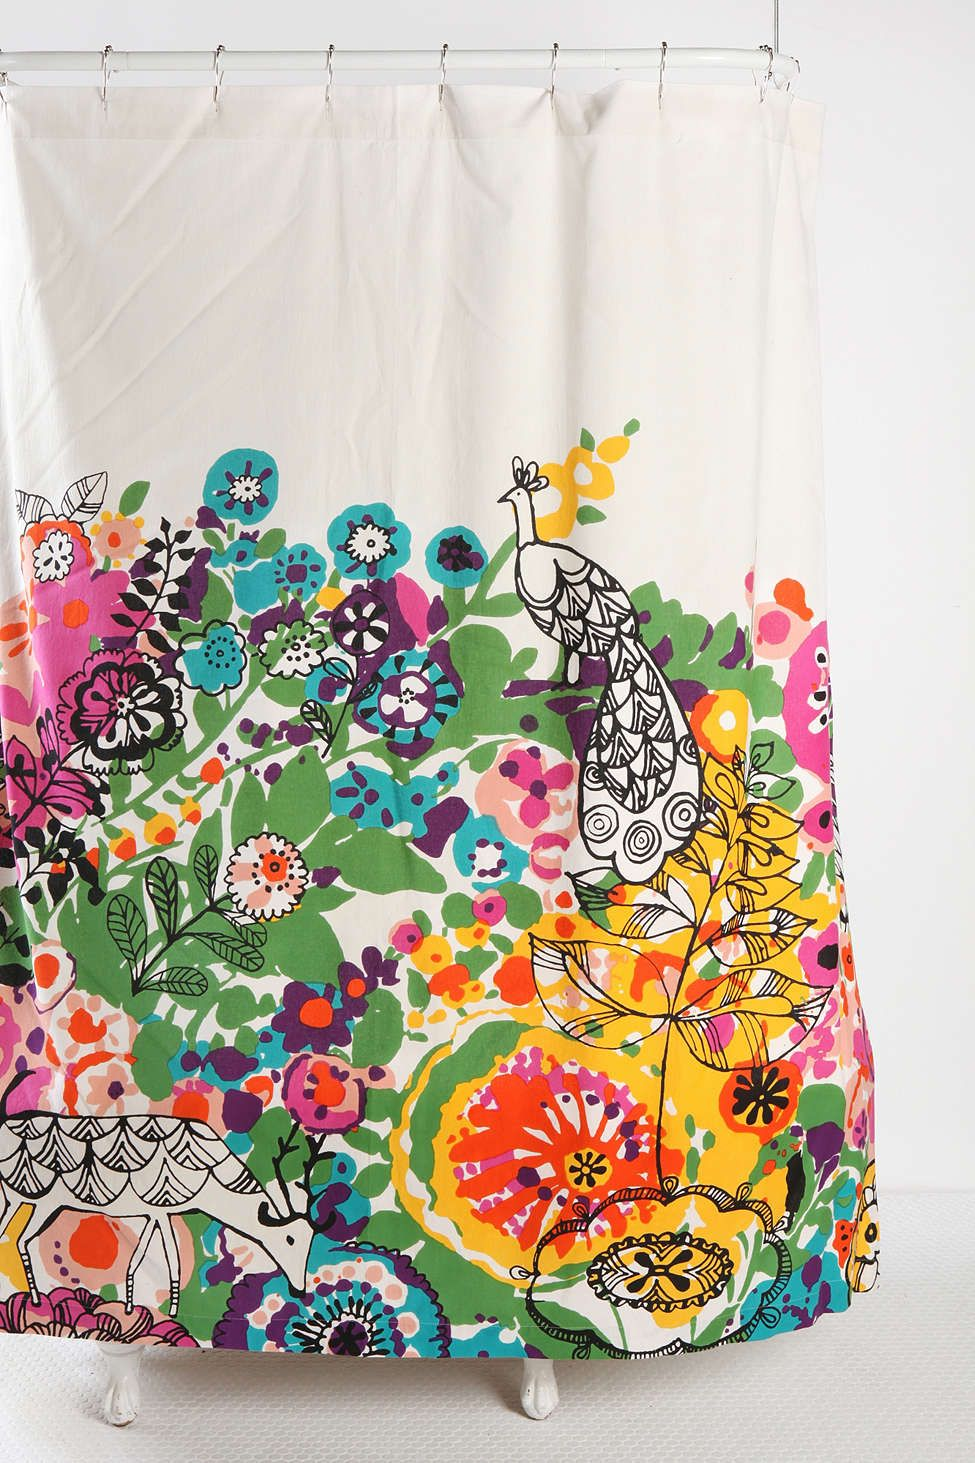 Peacock shower curtain urban outfitters - Woodland Garden Shower Curtain Urban Outfitters Kids Bathroom